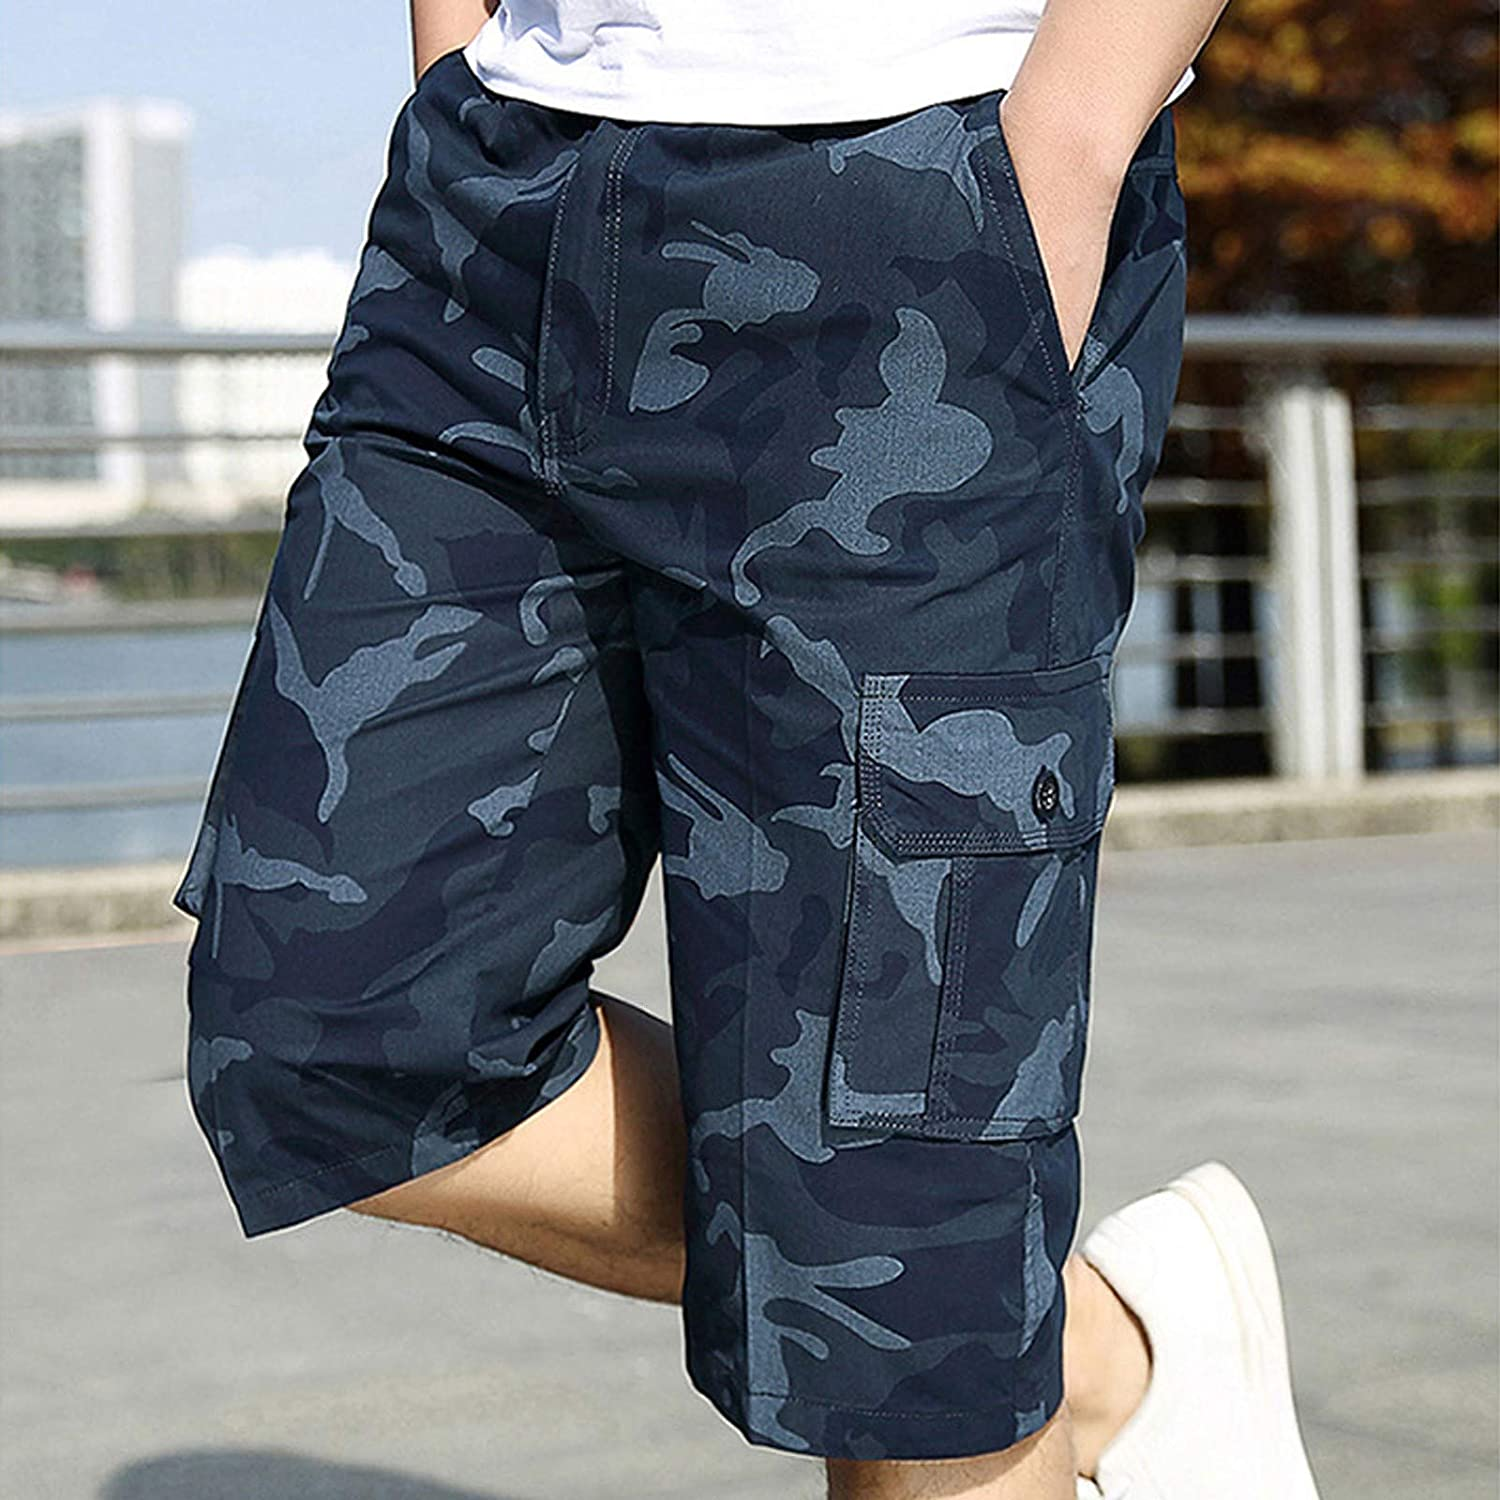 Yhjh 2021 Mens Messenger Short Camouflage Printed Pocket Summer Casual Handsome Fashion Outdoor Below Knee Cargo Shorts